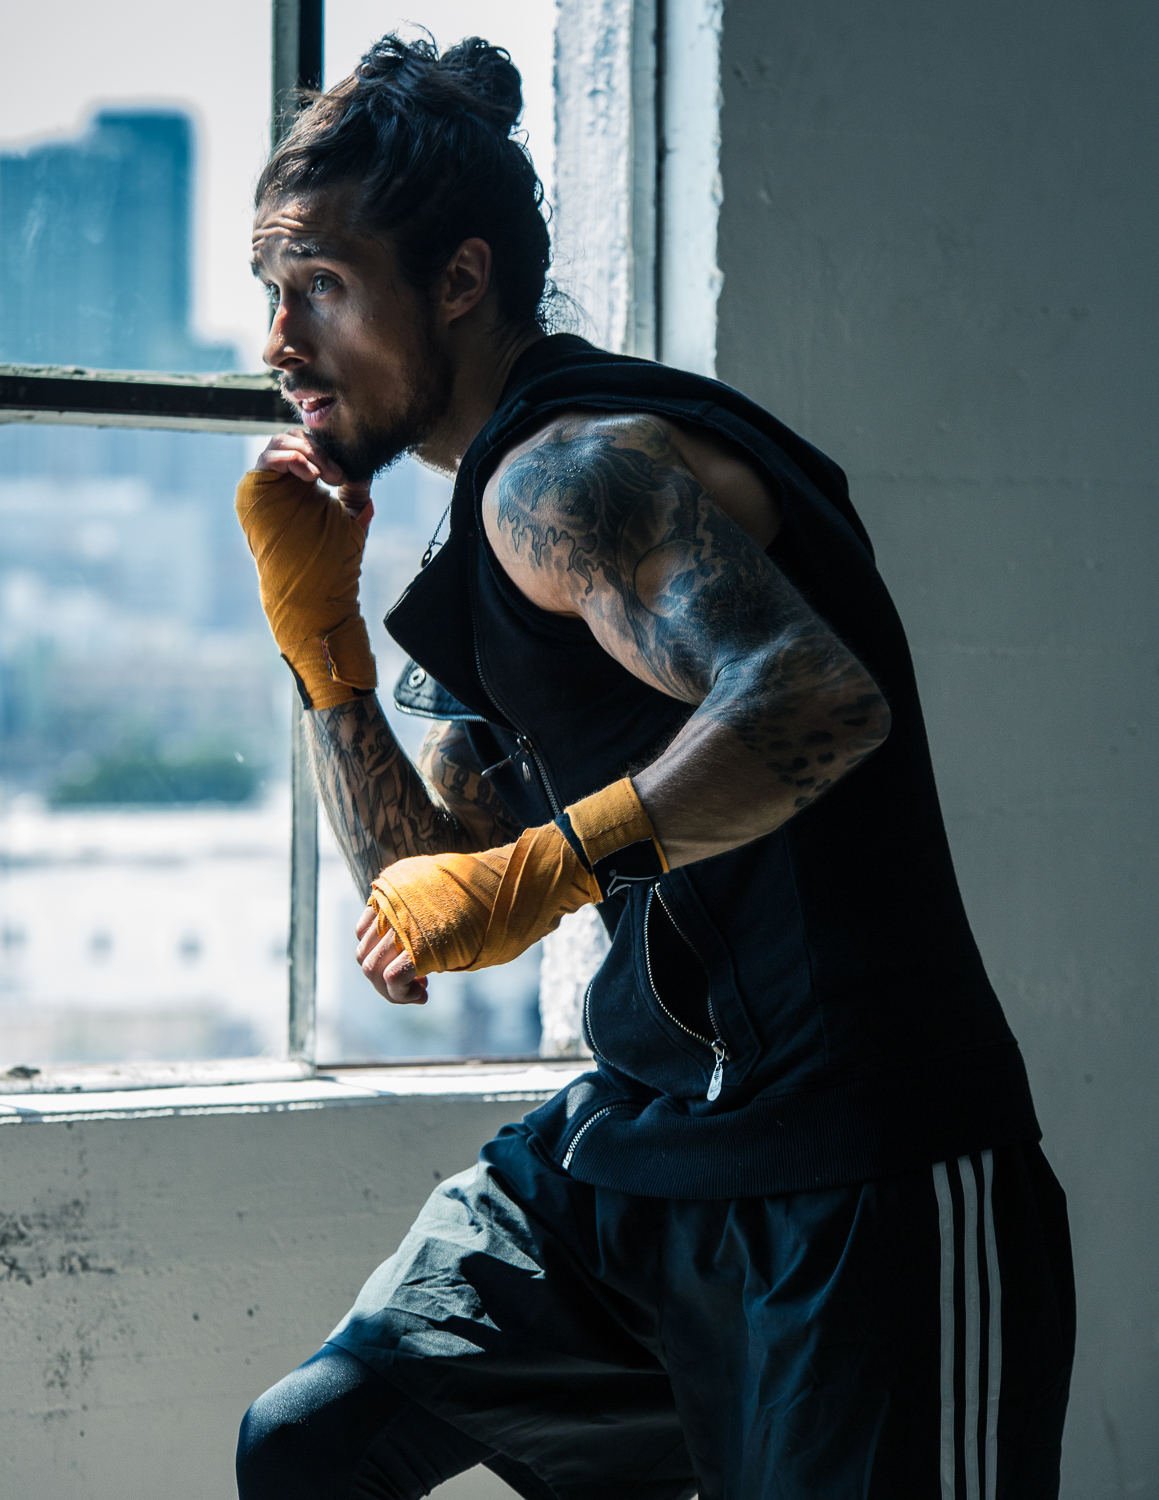 Luc_Richard Photography_Sports_Boxer_Athletes_-1.jpg